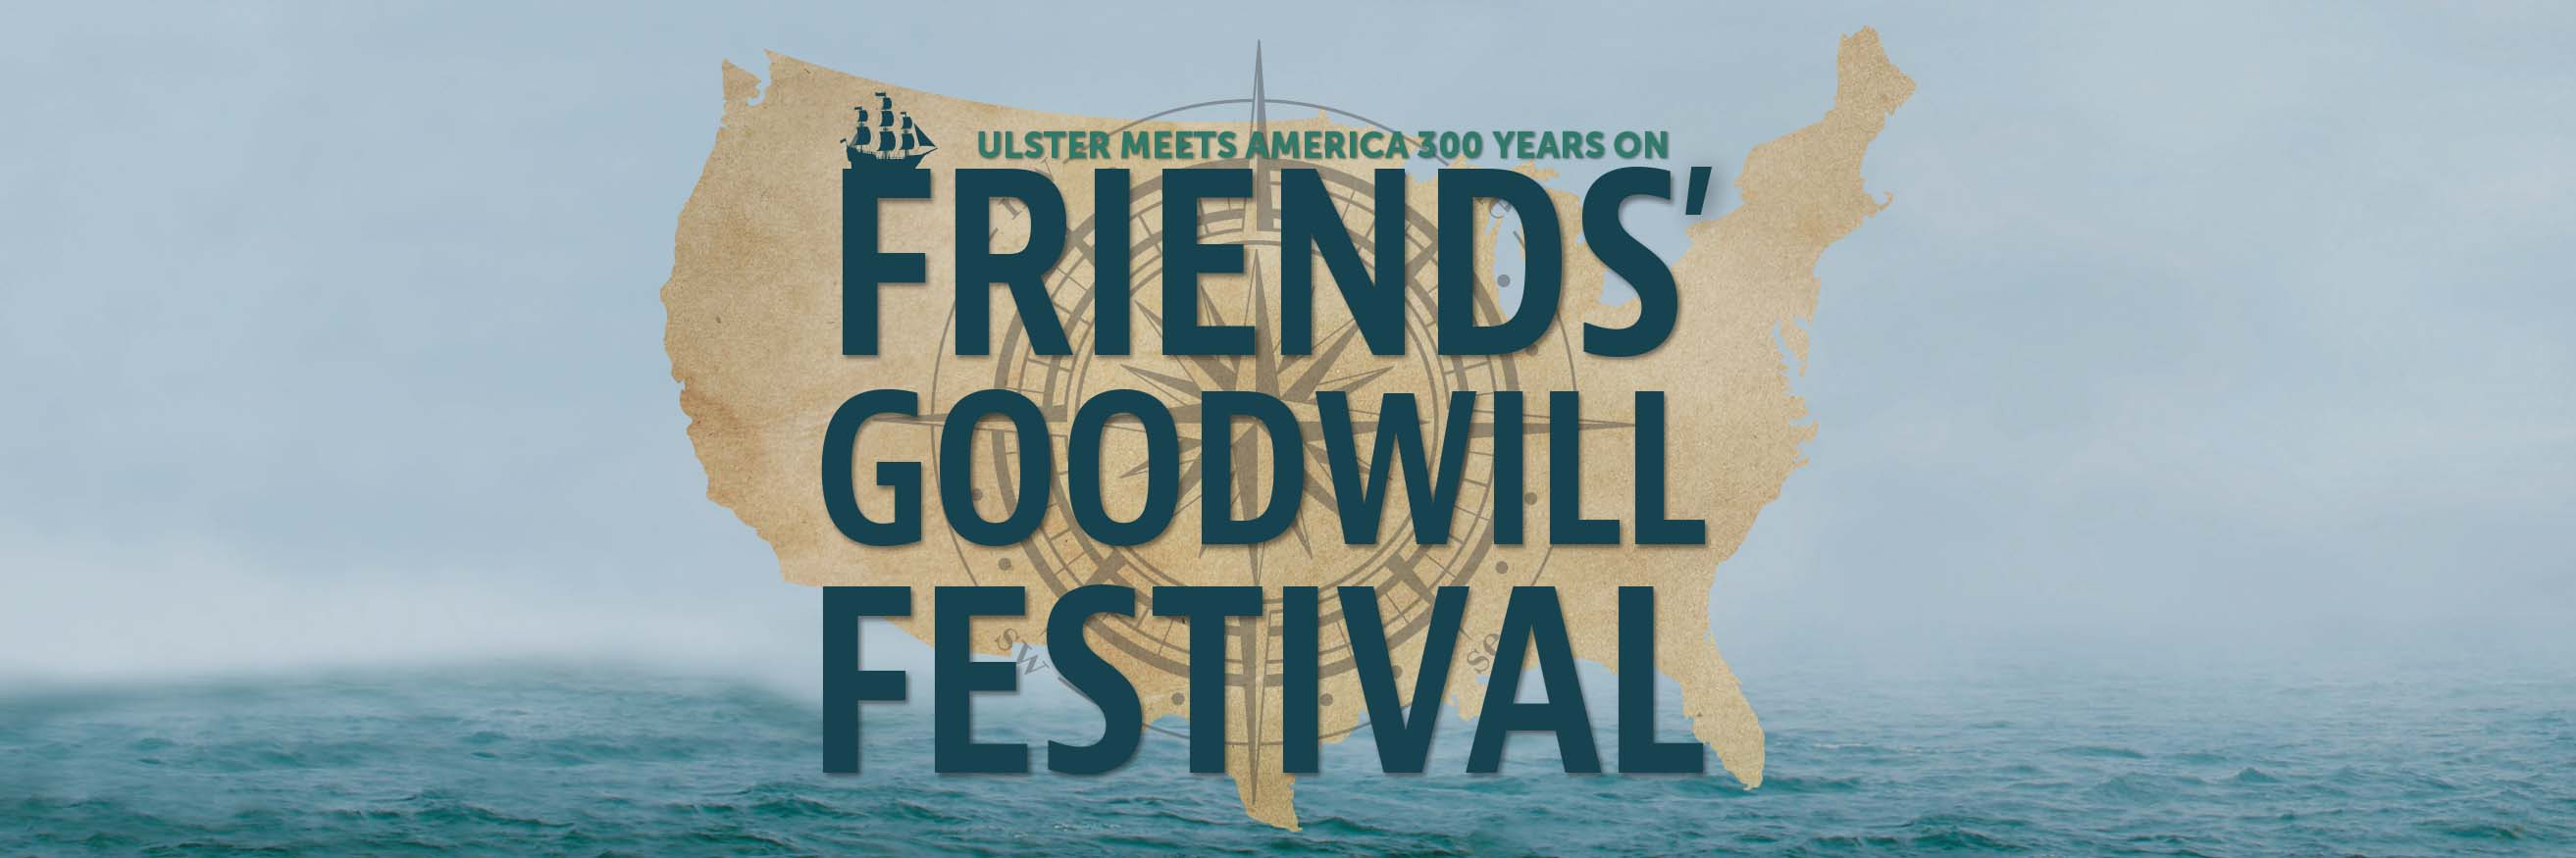 Logo for the Friends' Goodwill Festival